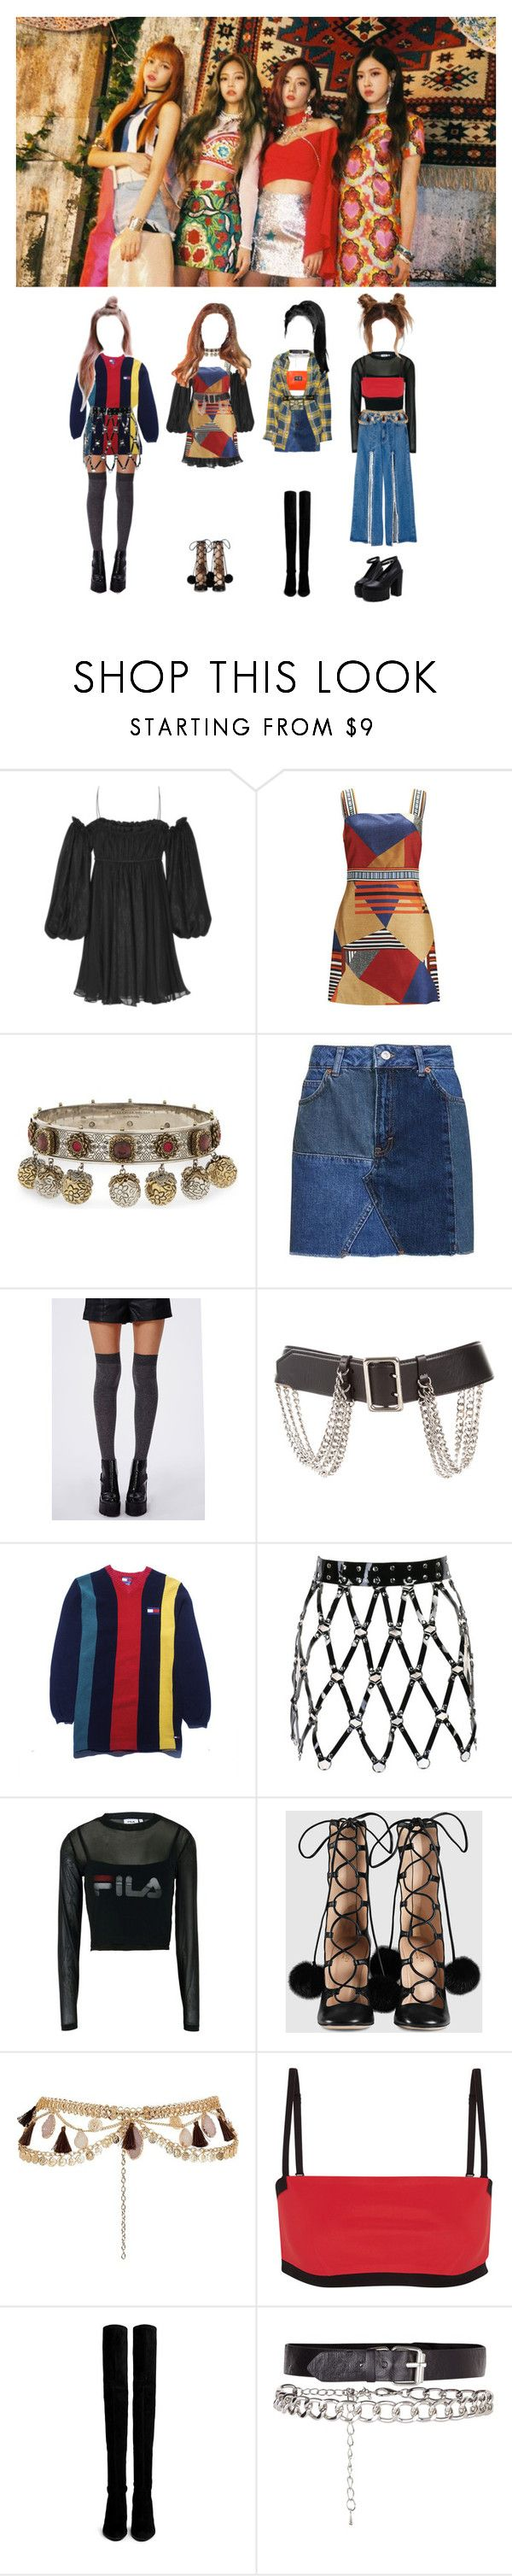 """i'll be the bonnie, you be my clyde"" by cxaxmx ❤ liked on Polyvore featuring Notte by Marchesa, Diane Von Furstenberg, Alexander McQueen, Topshop, Missguided, Burberry, WithChic, Fila, Gucci and River Island"